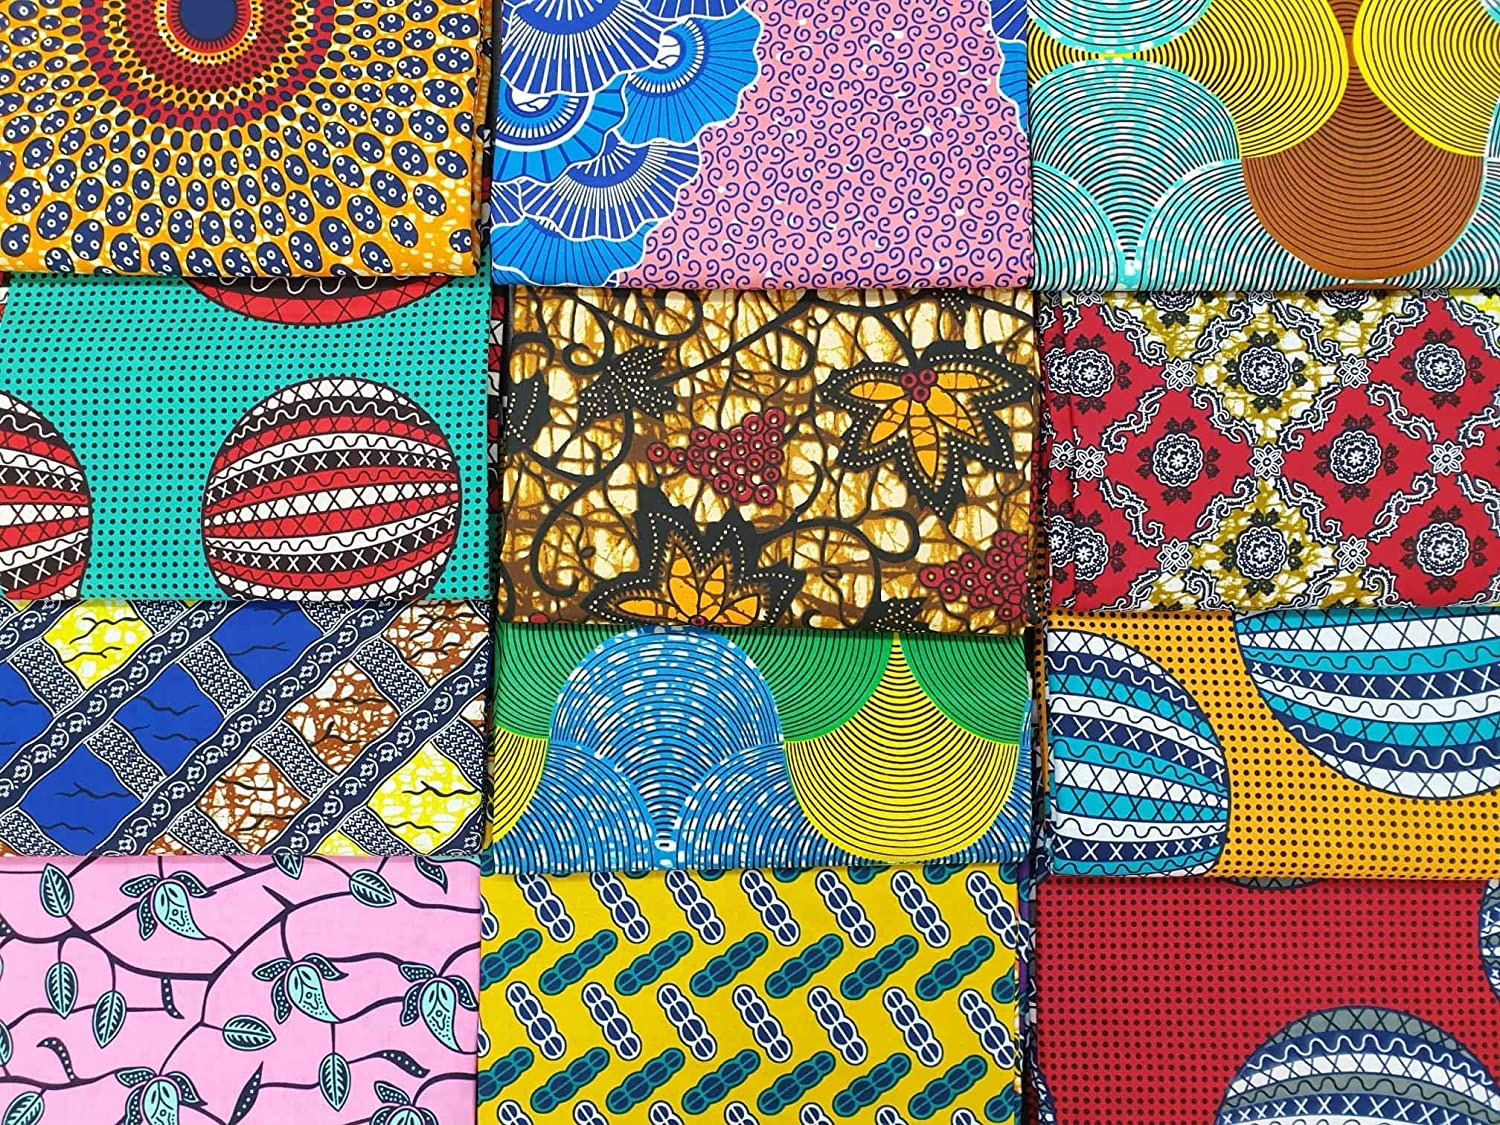 Quilting Art and Craft Patchwork Mask Making 22 x 17.5 Size: 56cm x 45cm or 6 Random African Fashion Inspired Style Fabric Fat Quarters//Samples 6 Pieces Cotton Ankara Material for Sewing